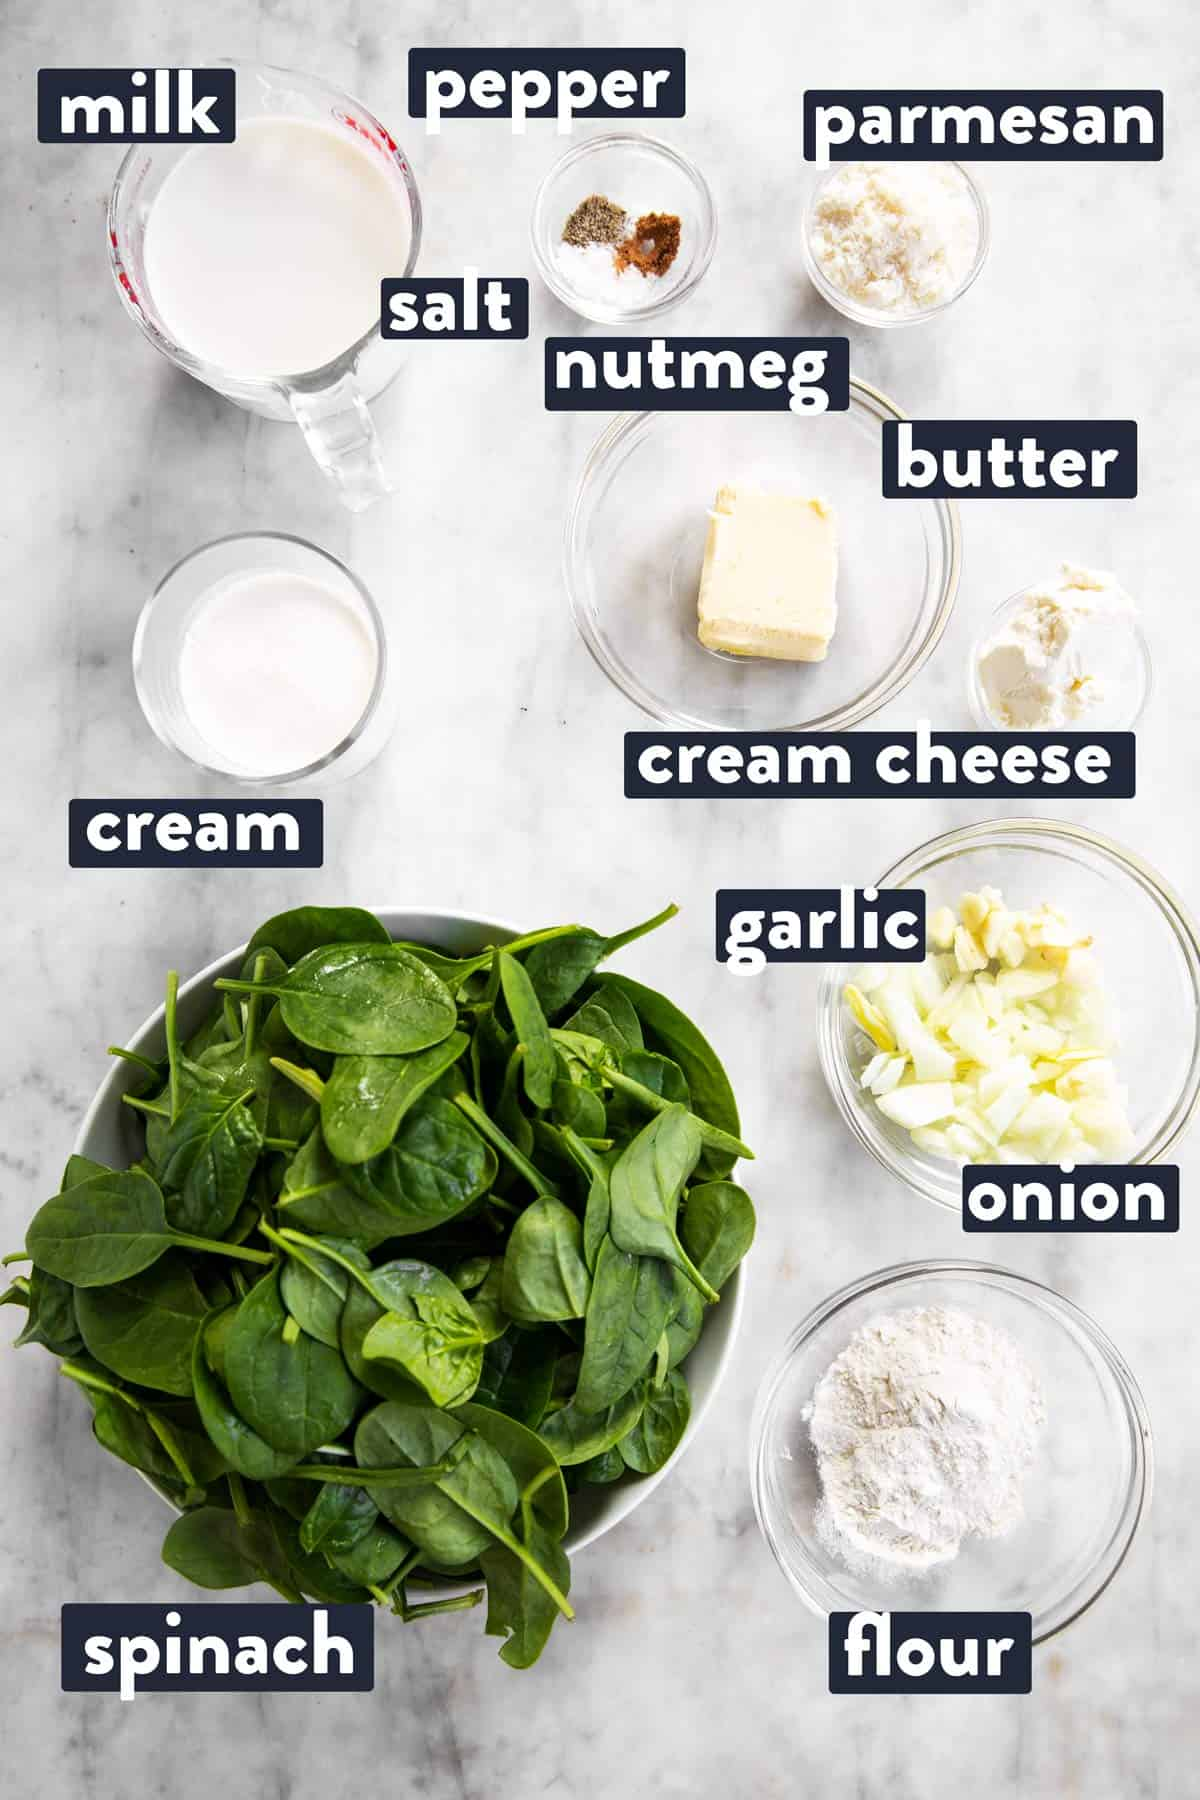 ingredients for creamed spinach with text labels